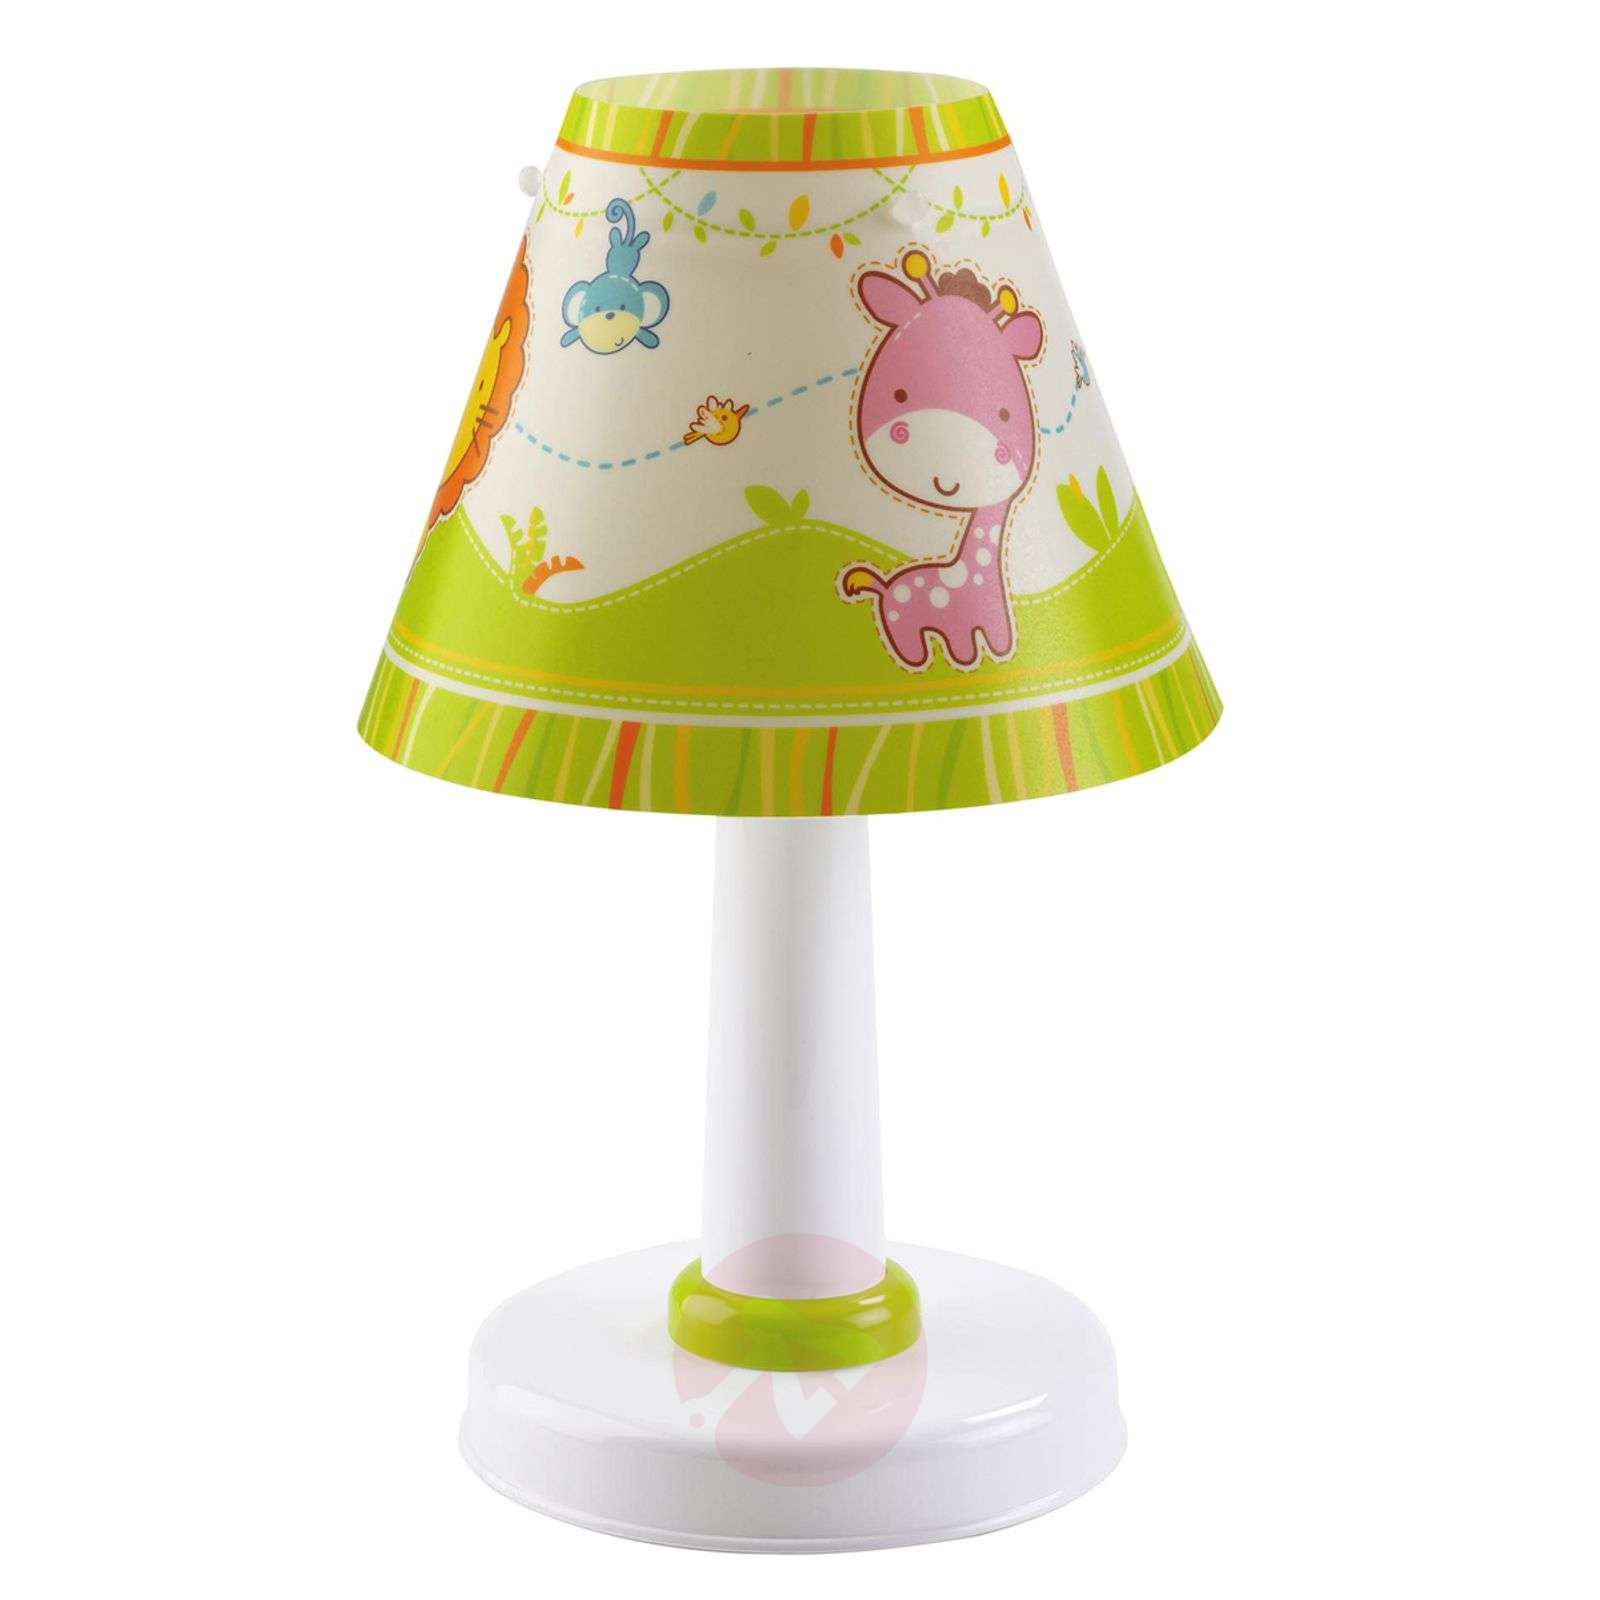 Cute childrens table lamp Little Zoo-2507360-01